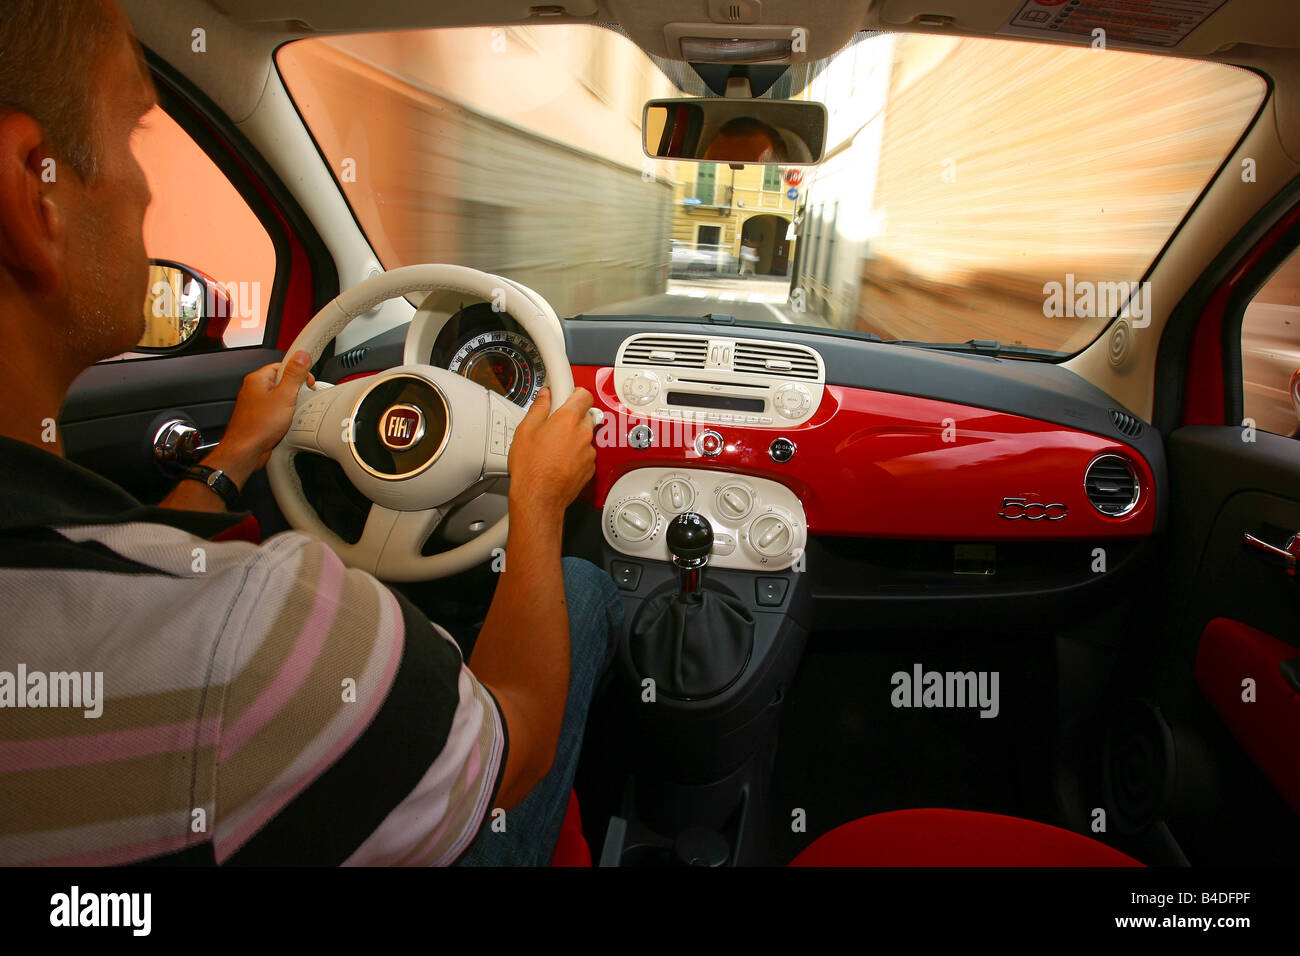 https://c8.alamy.com/comp/B4DFPF/fiat-500-model-year-2007-red-driving-interior-view-panned-shot-from-B4DFPF.jpg